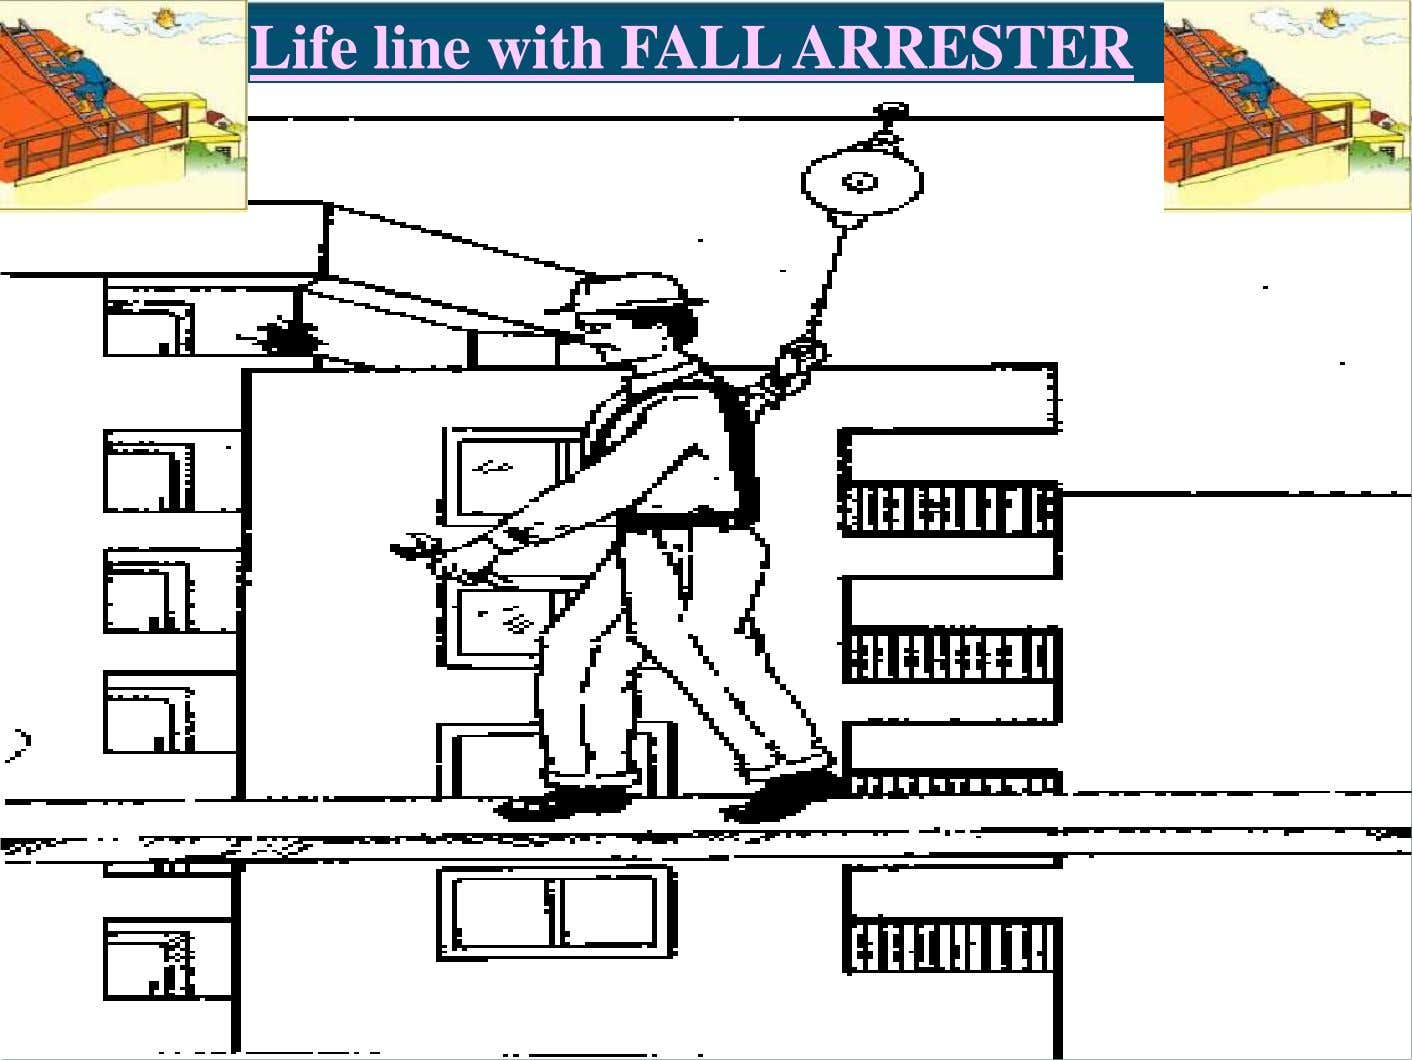 Life line with FALL ARRESTER